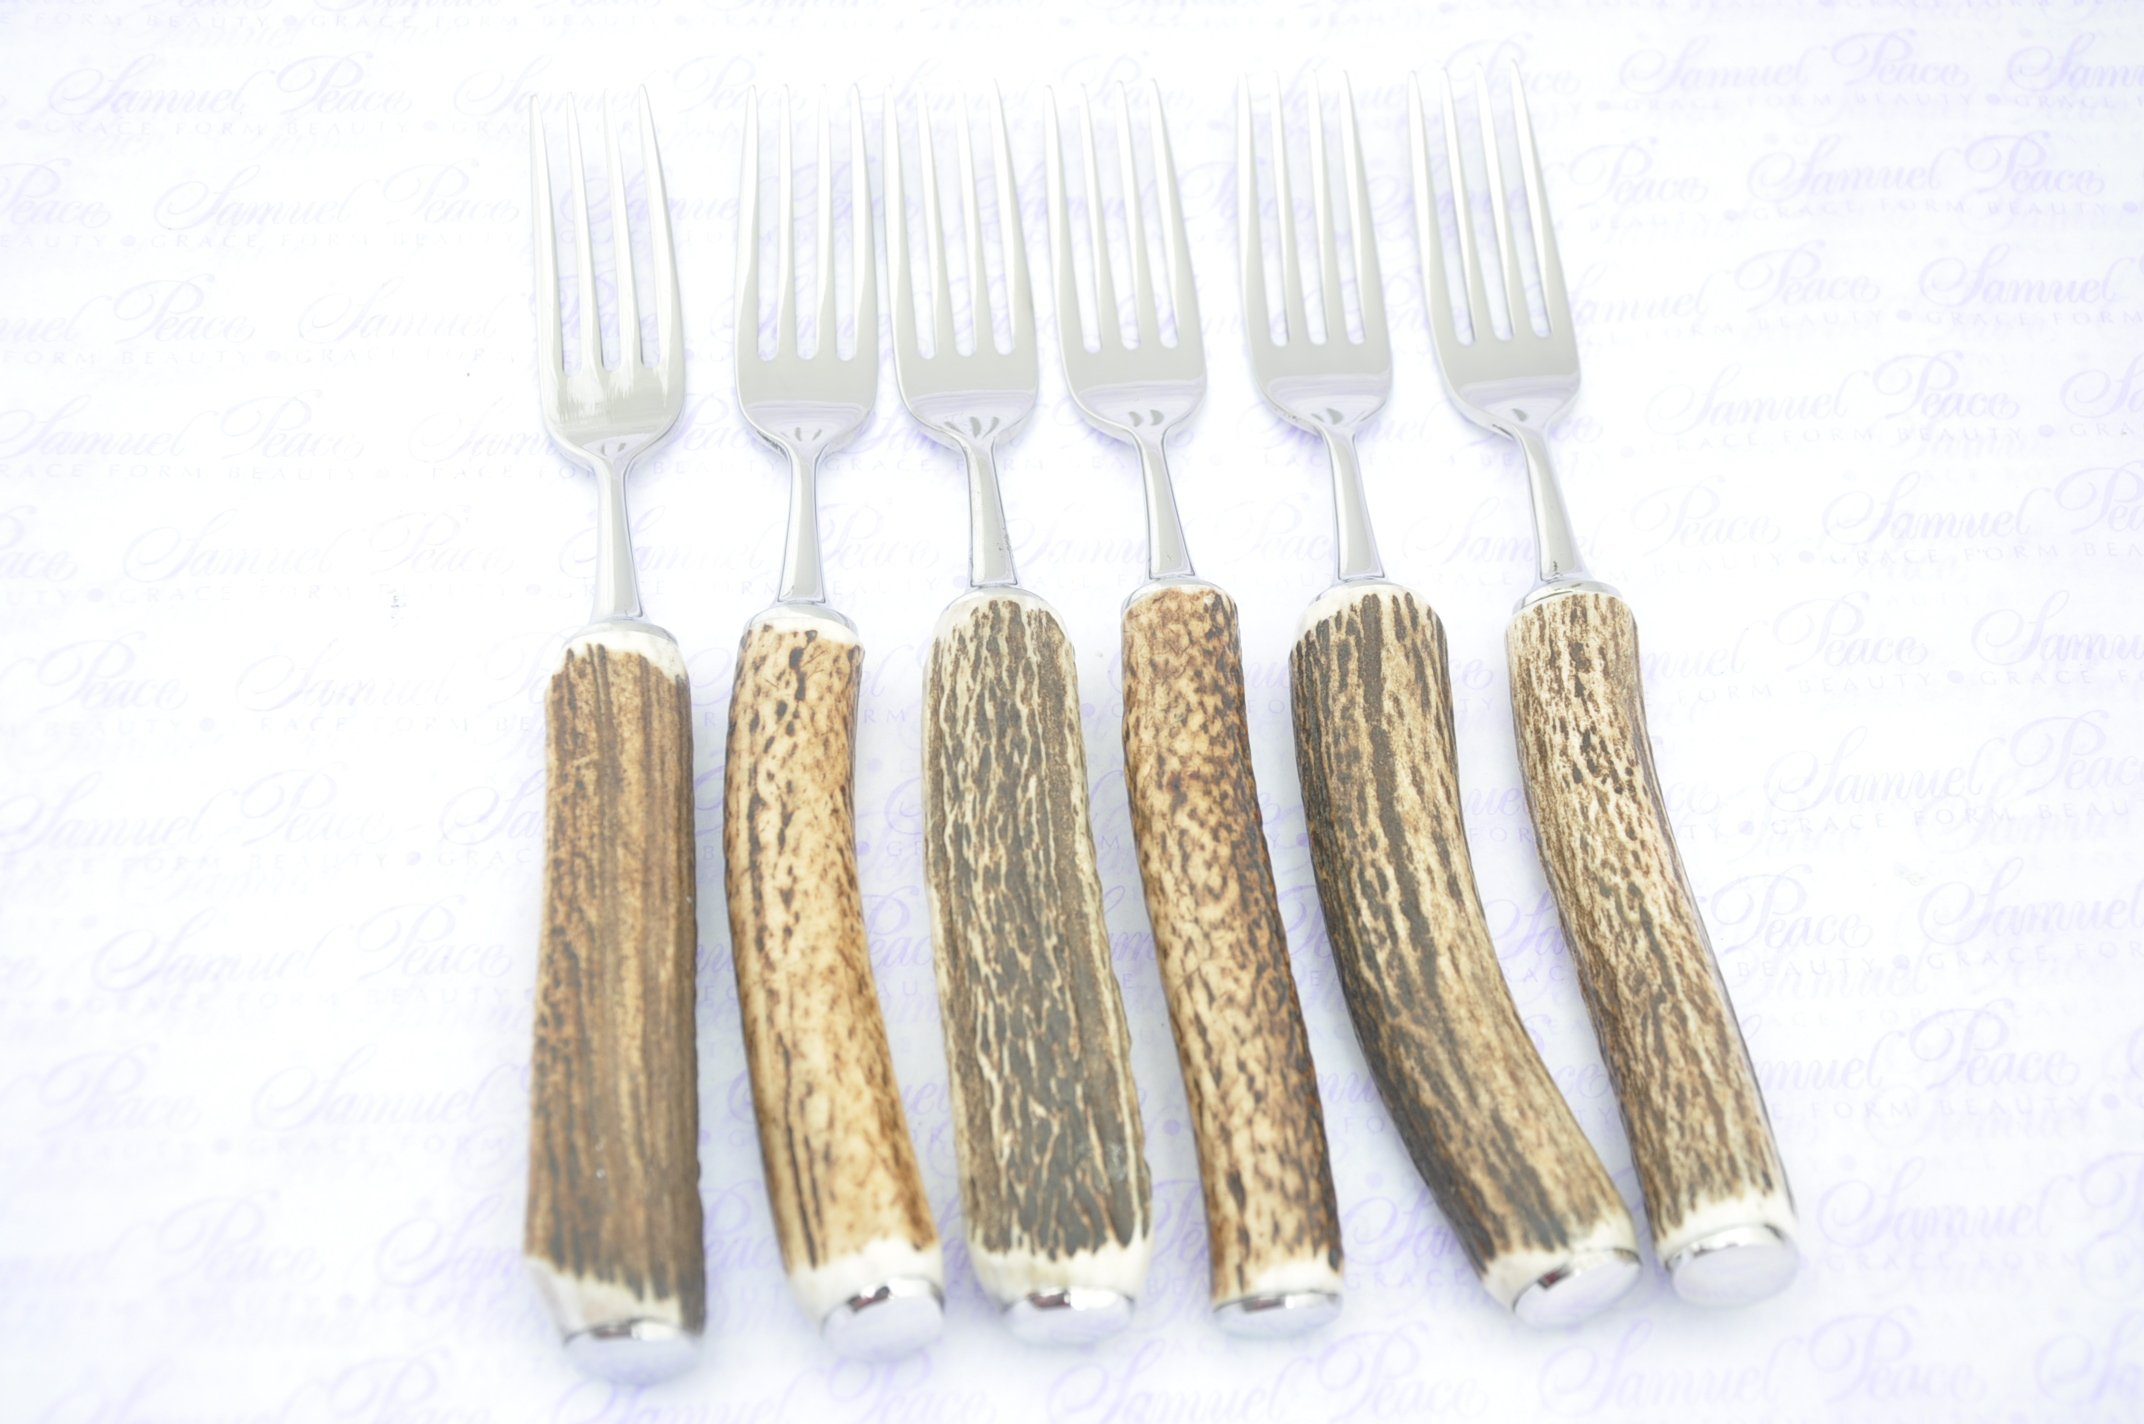 Six Genuine Stag Horn/Antler Handle Table Forks Boxed Made In Sheffield England by Sheffieldcutleryshop (Image #7)